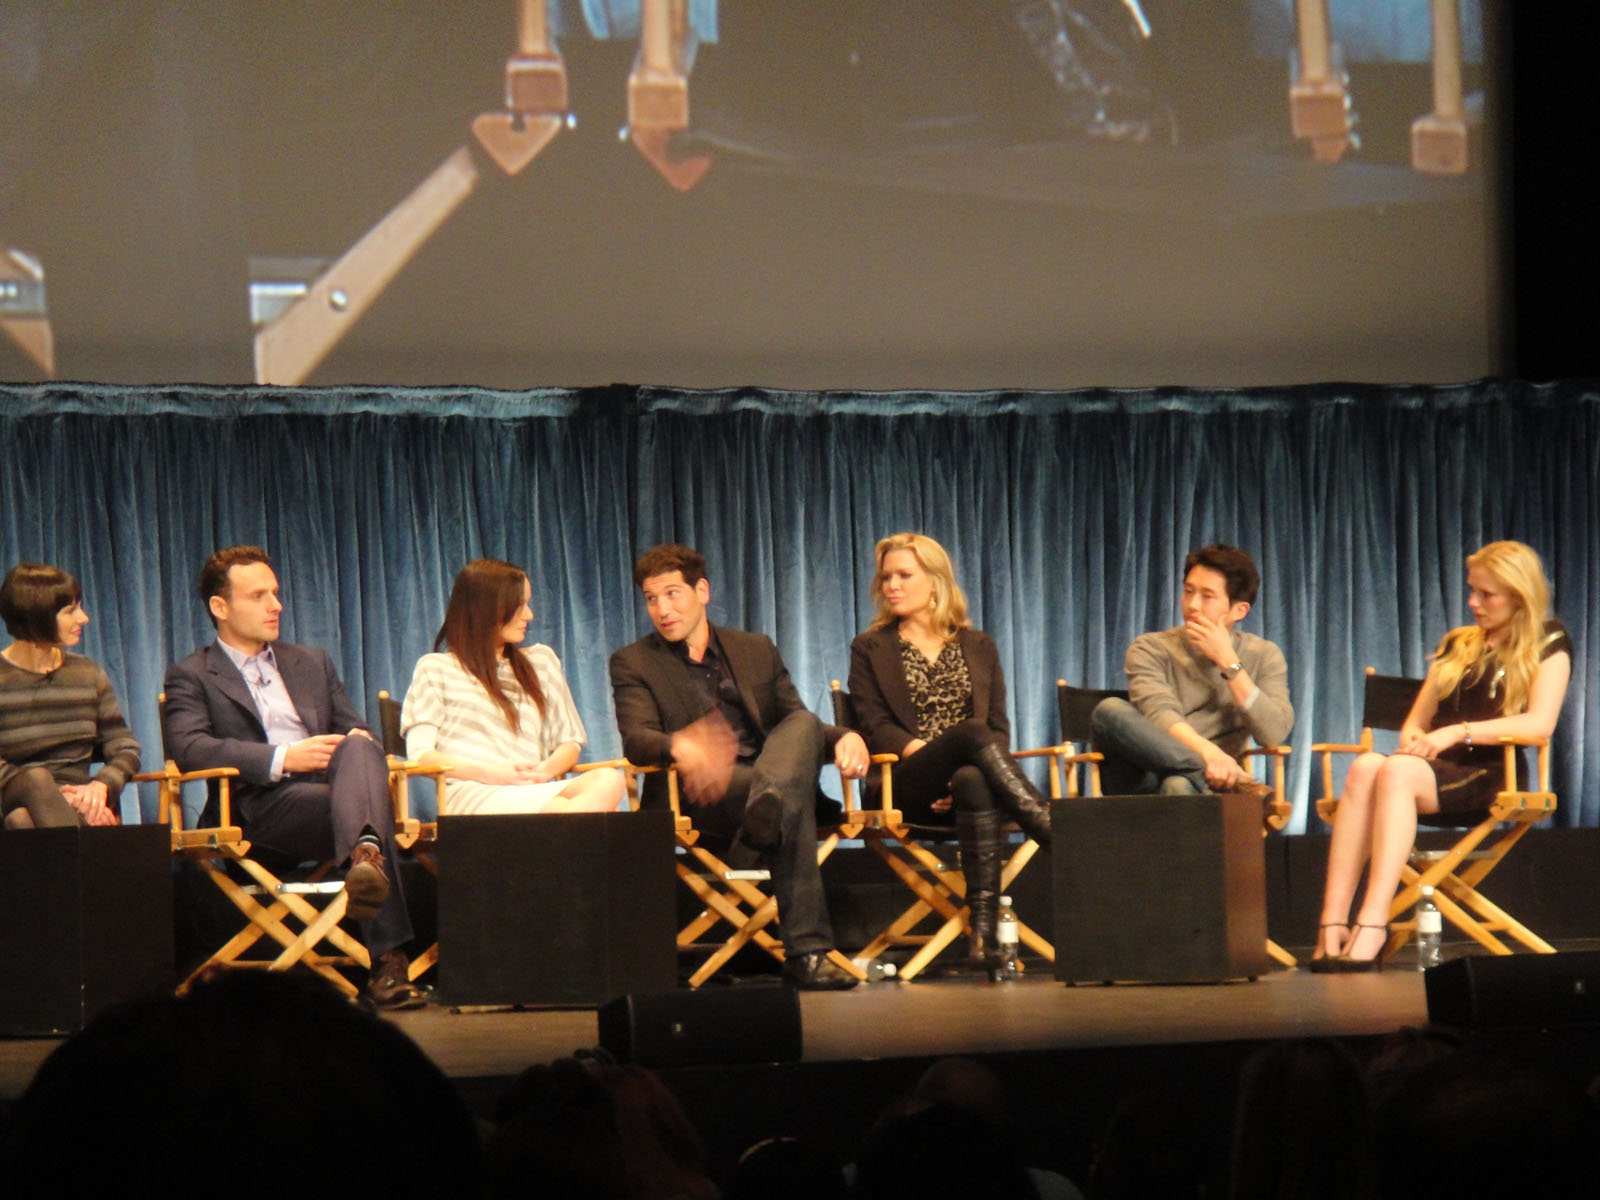 The Walking Dead Paley Fest Panel1 The Cast Talk The Walking Dead in Complete Paley Fest Panel Discussion